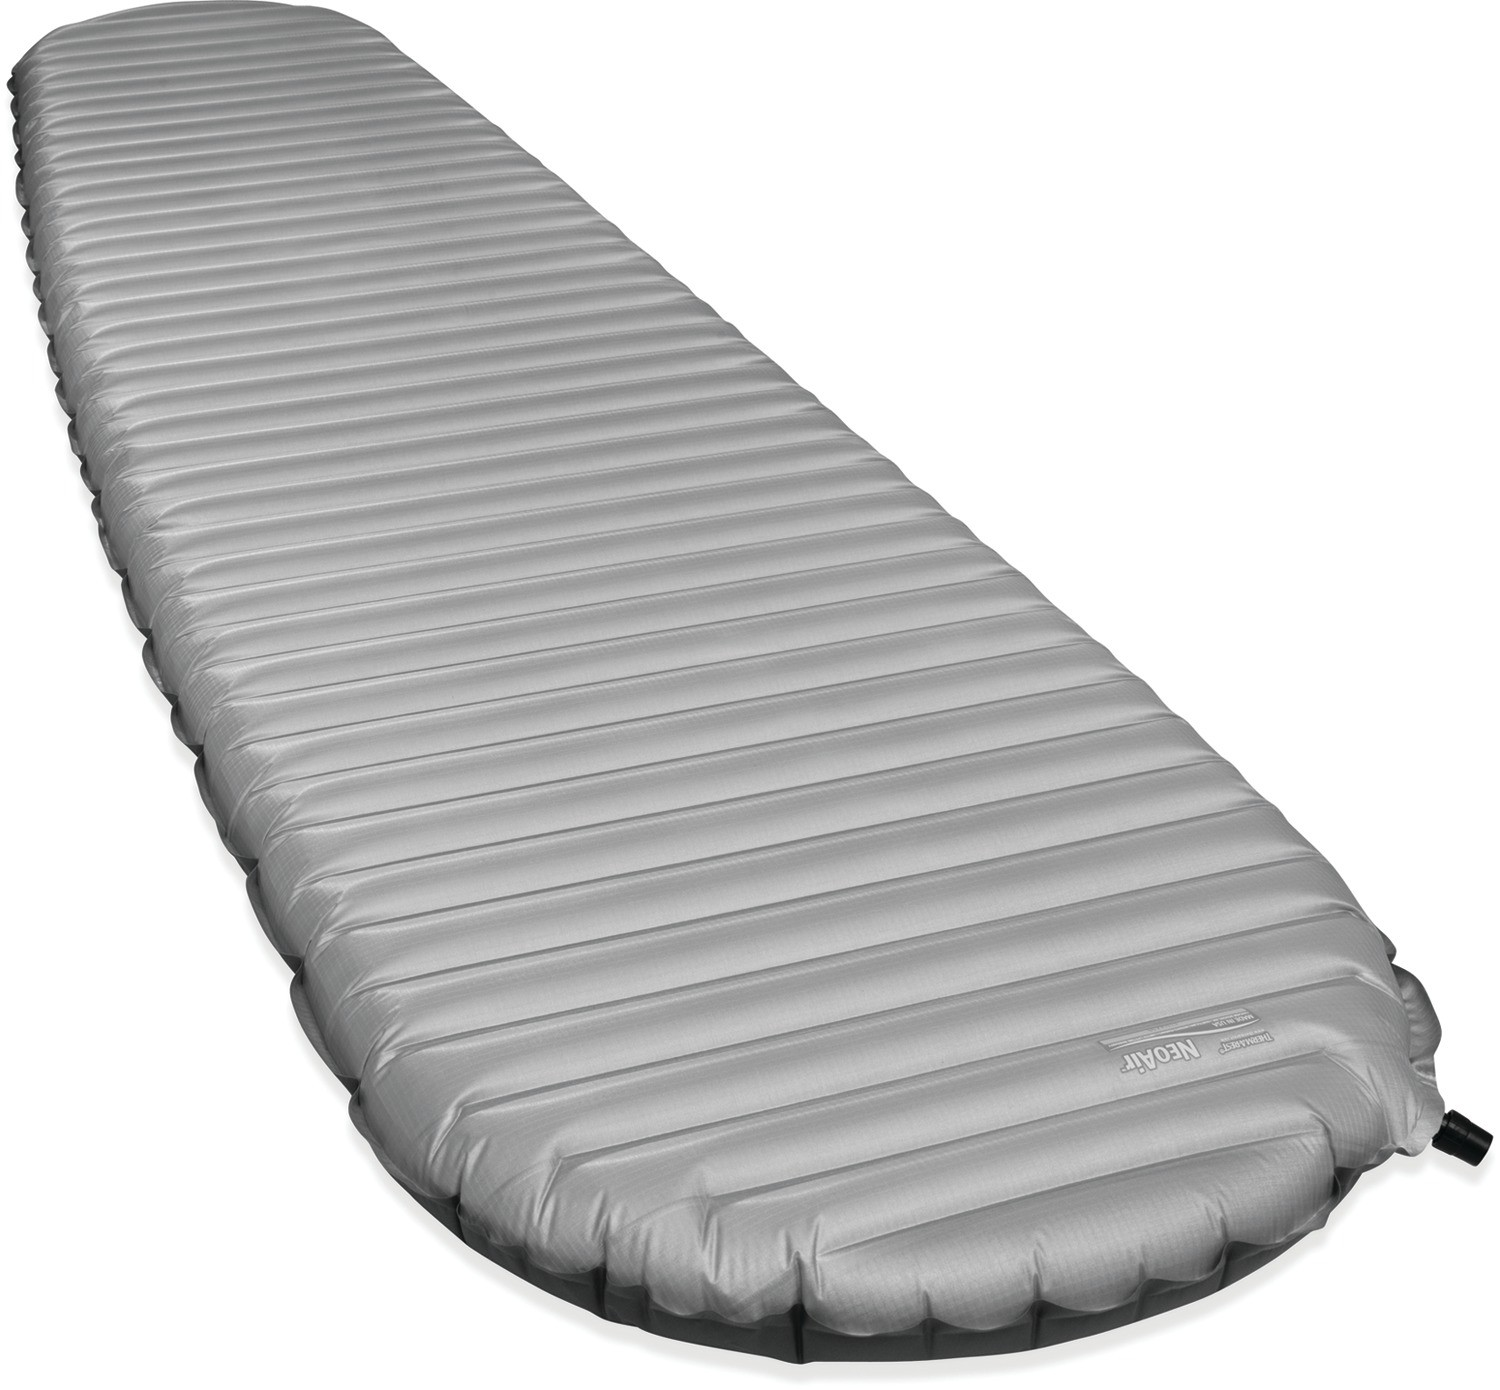 Sleeping Pad & Pumps